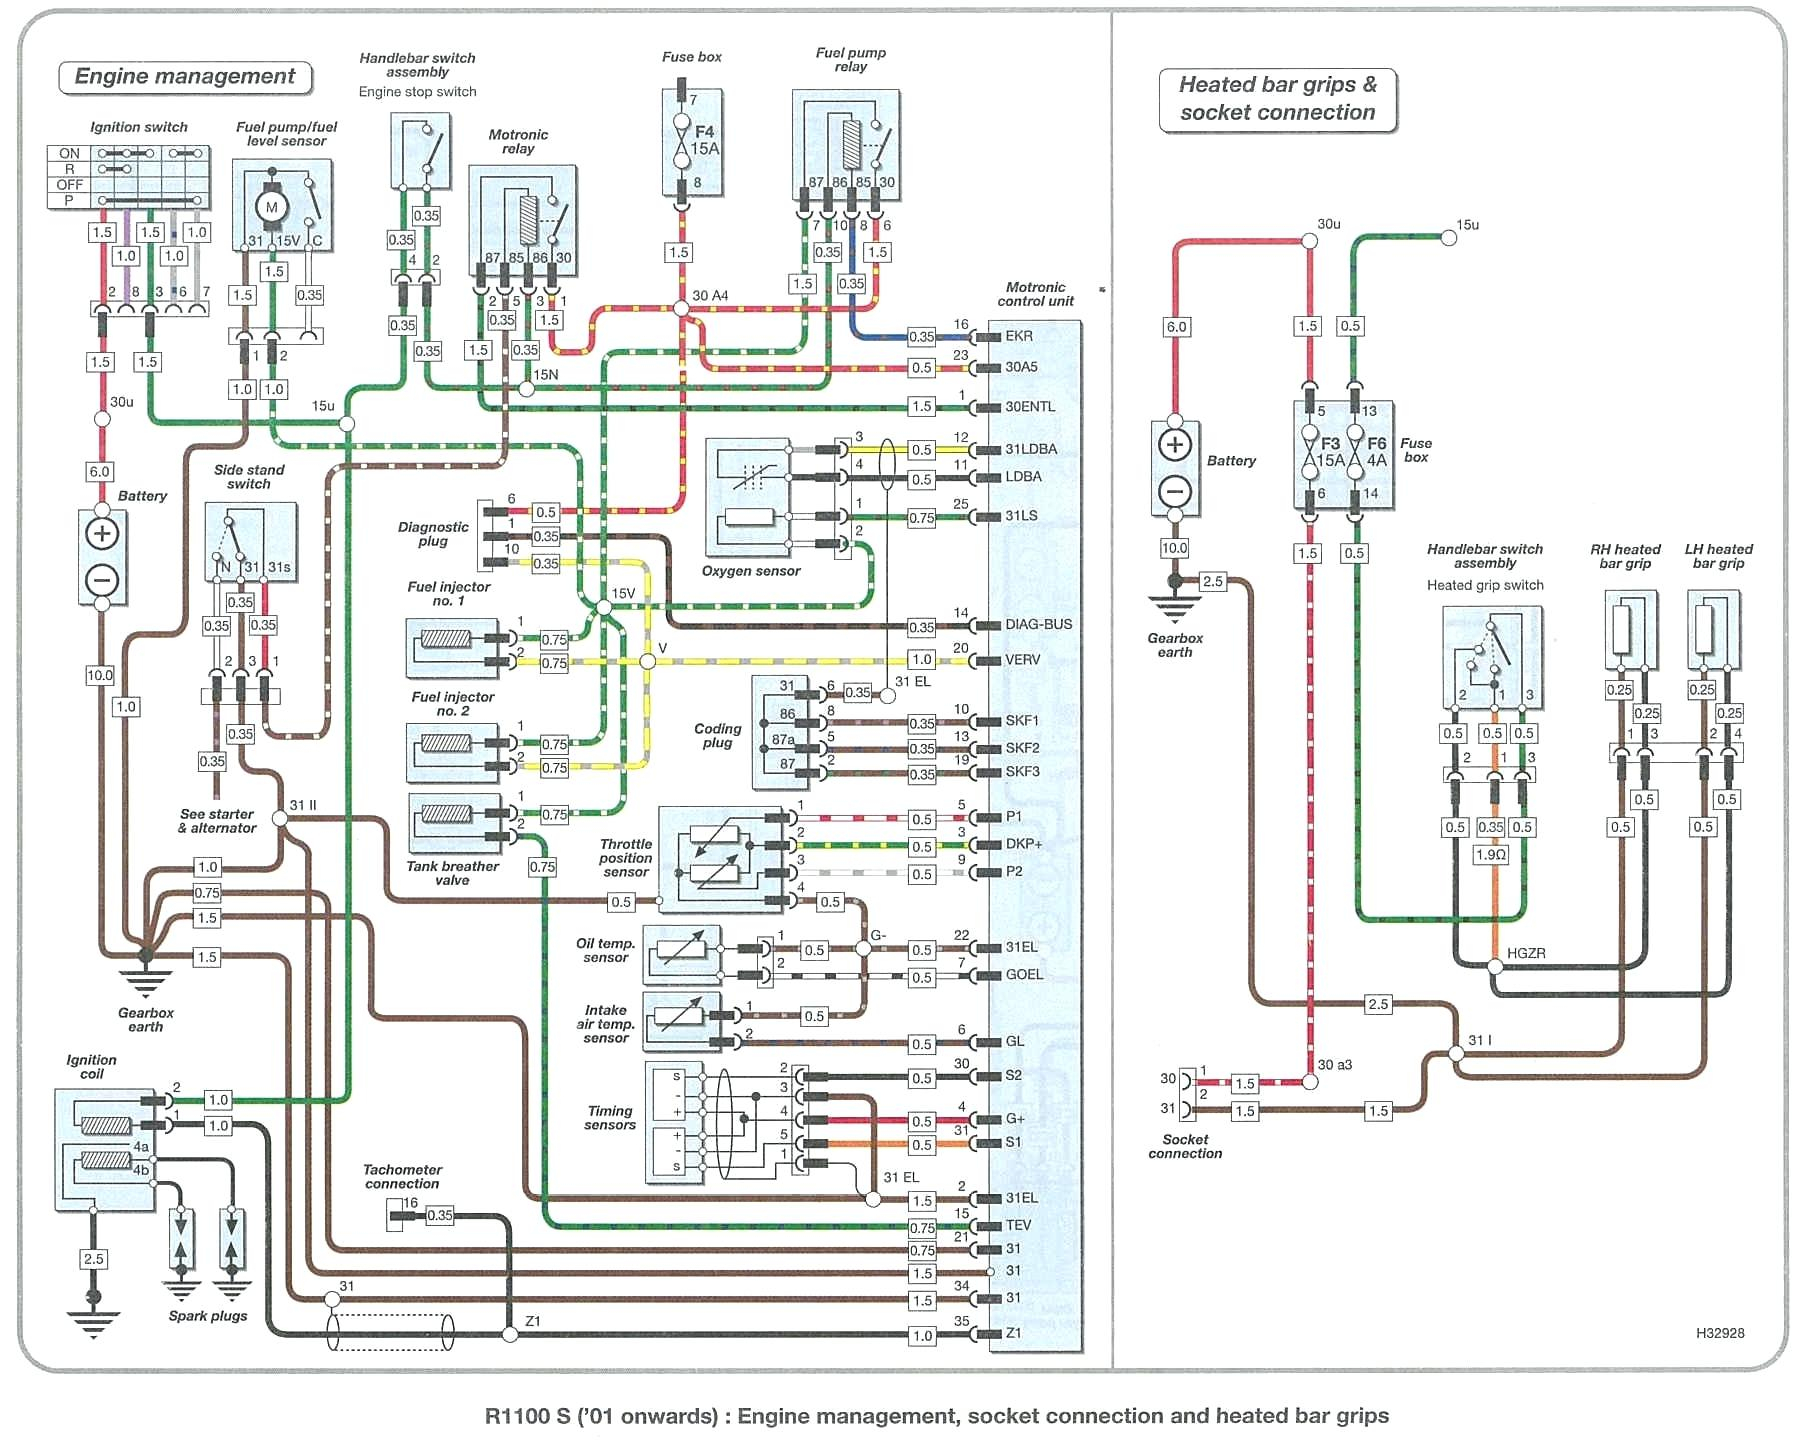 bmw x3 wiring diagram pdf Download-Bmw Wiring Diagram Fresh Famous Bmw X3 Wiring Diagram Electrical Circuit Diagram 9-o